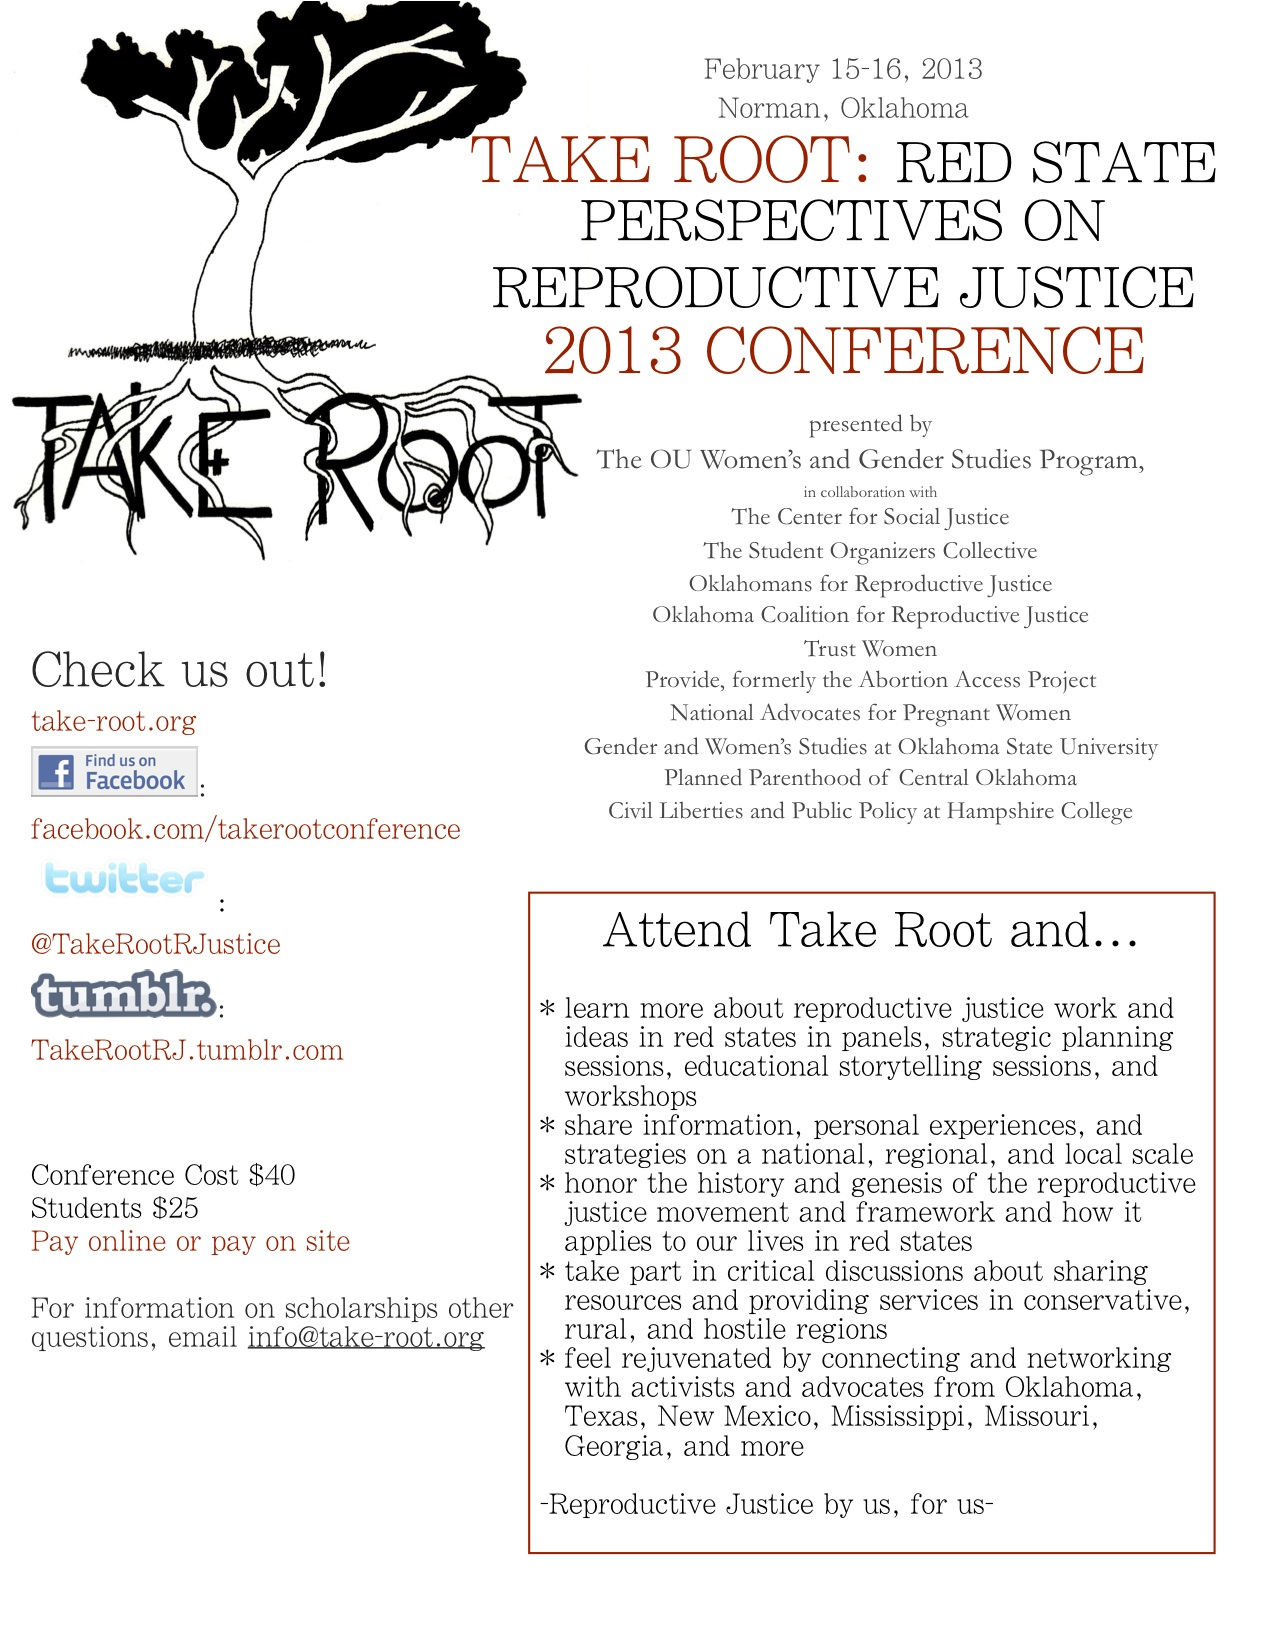 NAPW supports, attends, and speaks at 3rd Annual Take Root: Red State Perspectives on Reproductive Justice Conference in Oklahoma